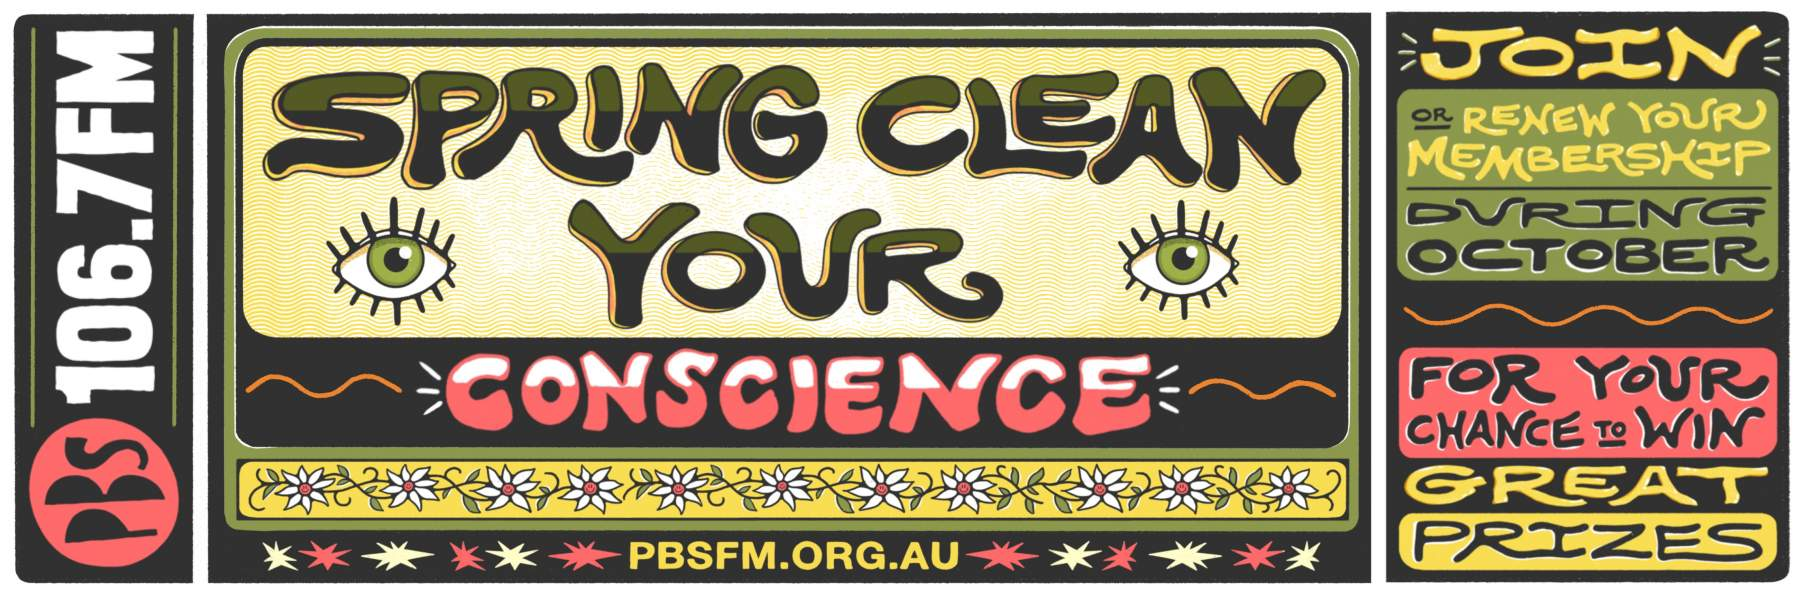 Spring Clean Your Conscience 2021